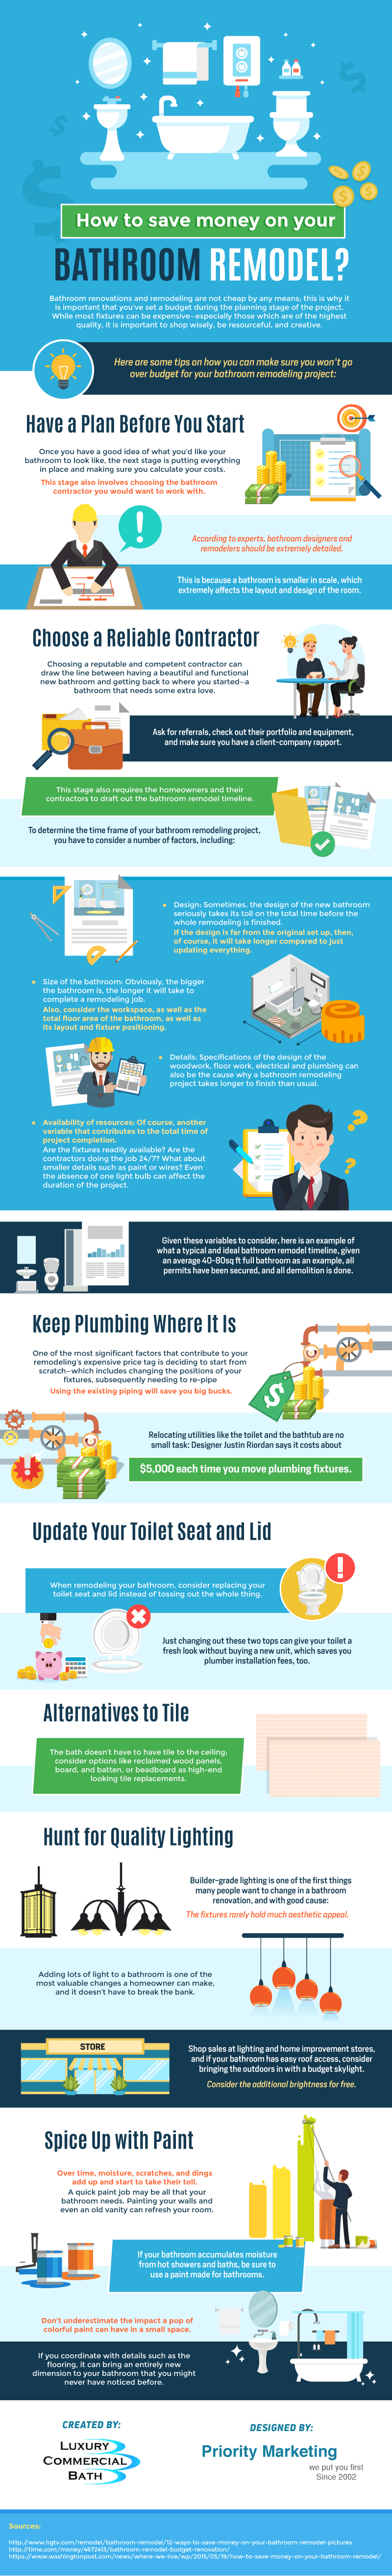 How To Save Money On Your Bathroom Remodel Infographic Portal - Ways to save money on bathroom remodel